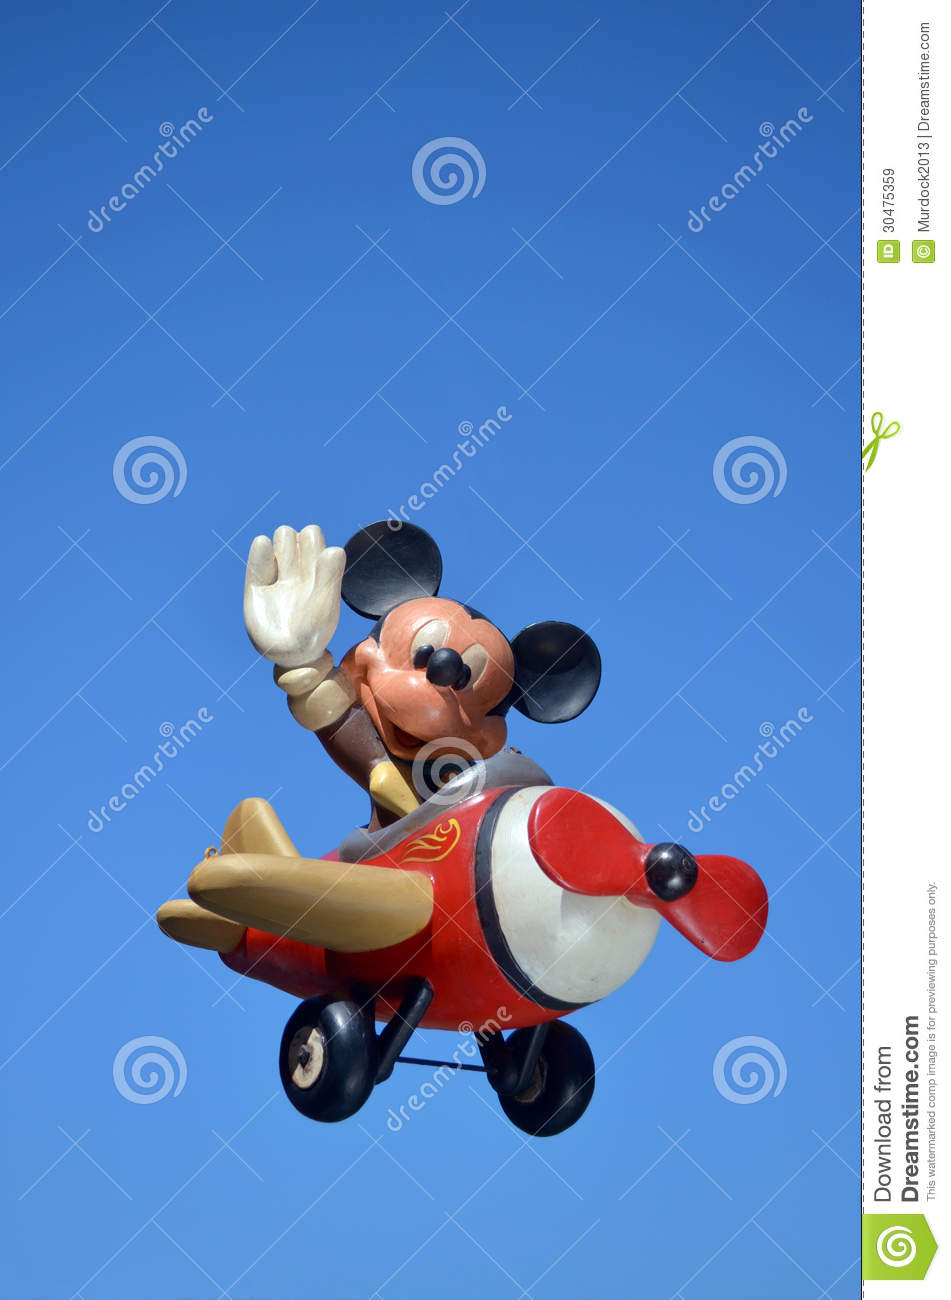 Animated Sky Wallpaper Disney Mickey Mouse Editorial Stock Image Image Of